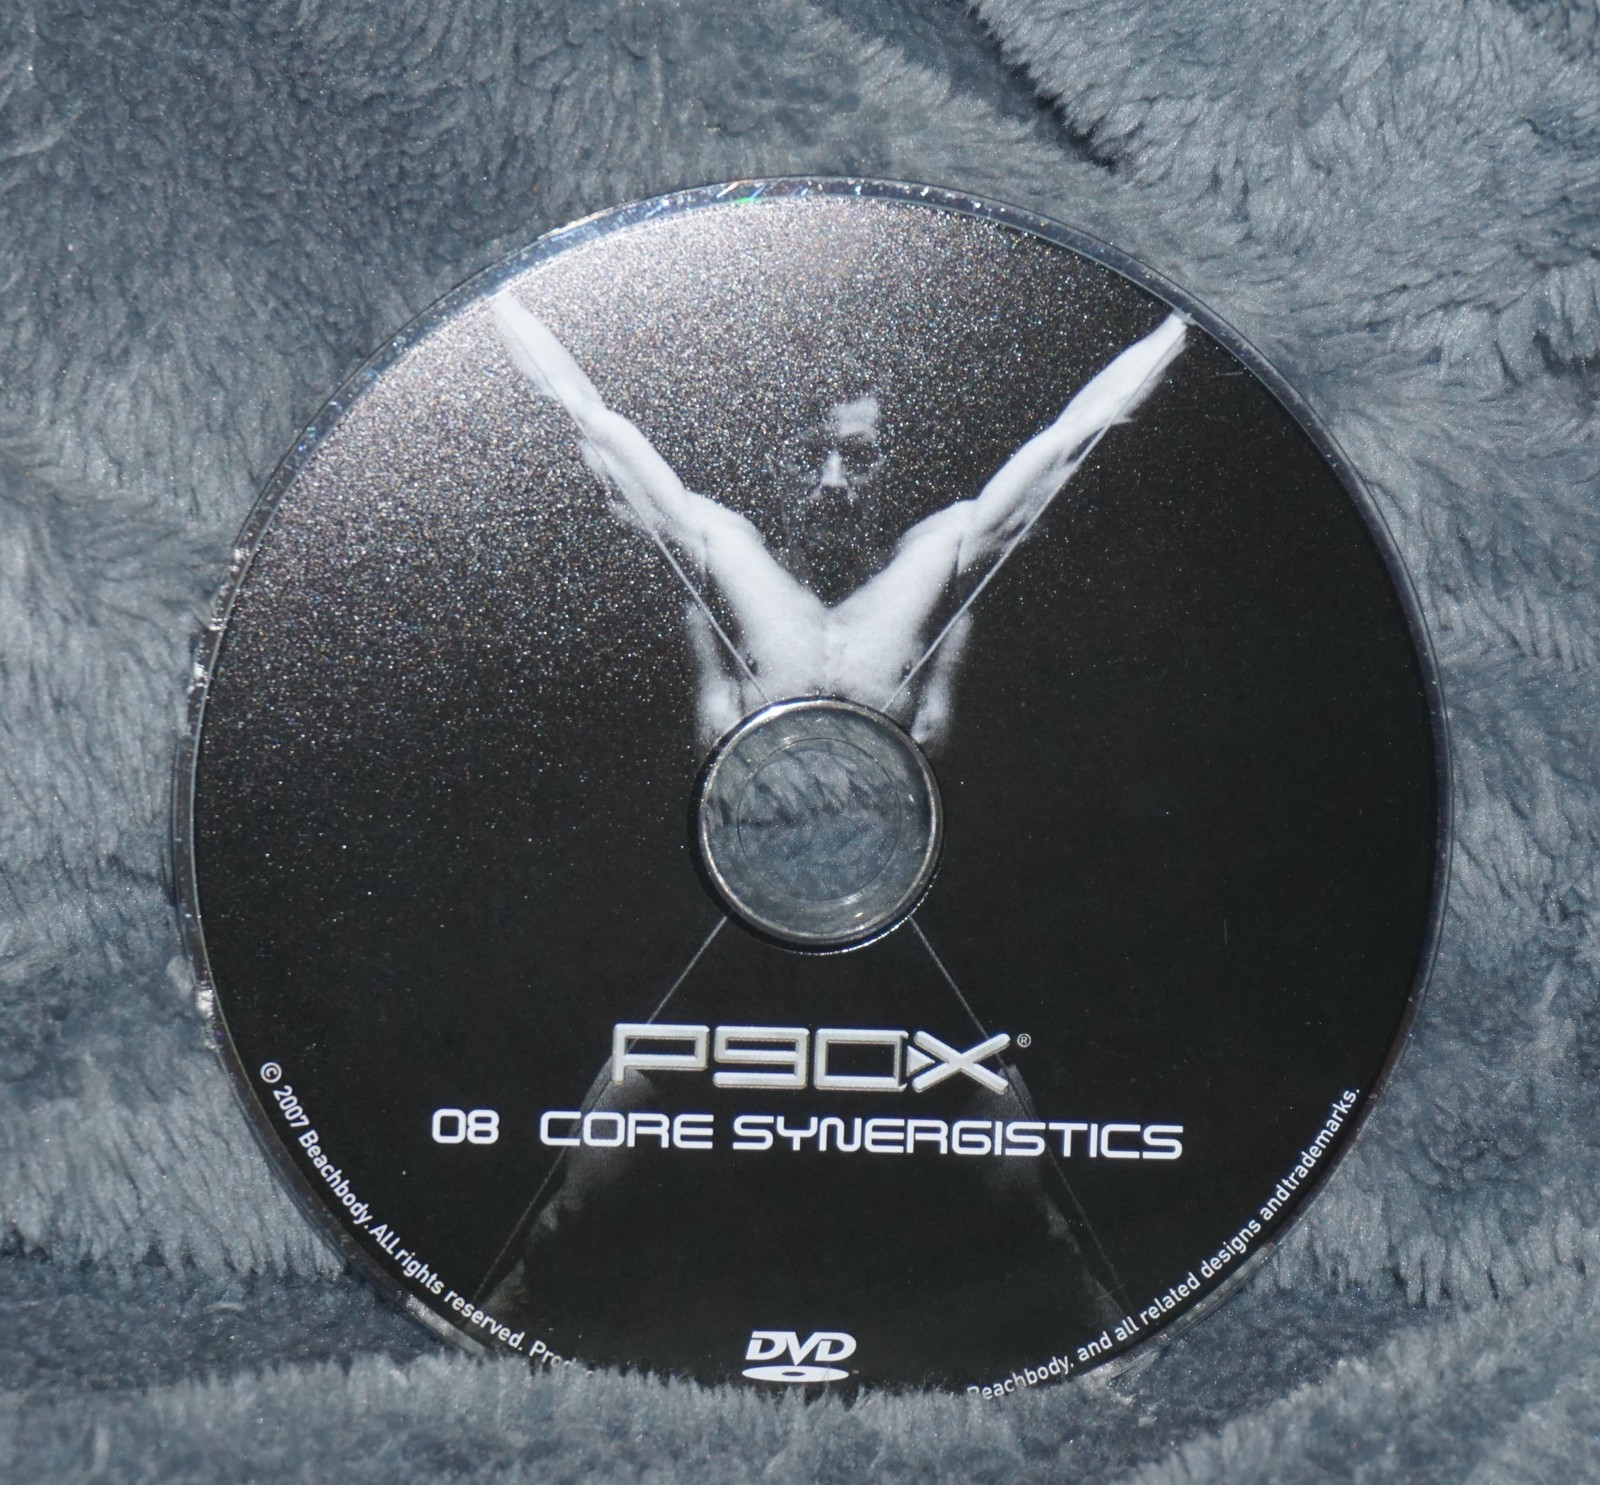 P90x Disc 8 Core Synergisticis Replacement Dvd Disc Only